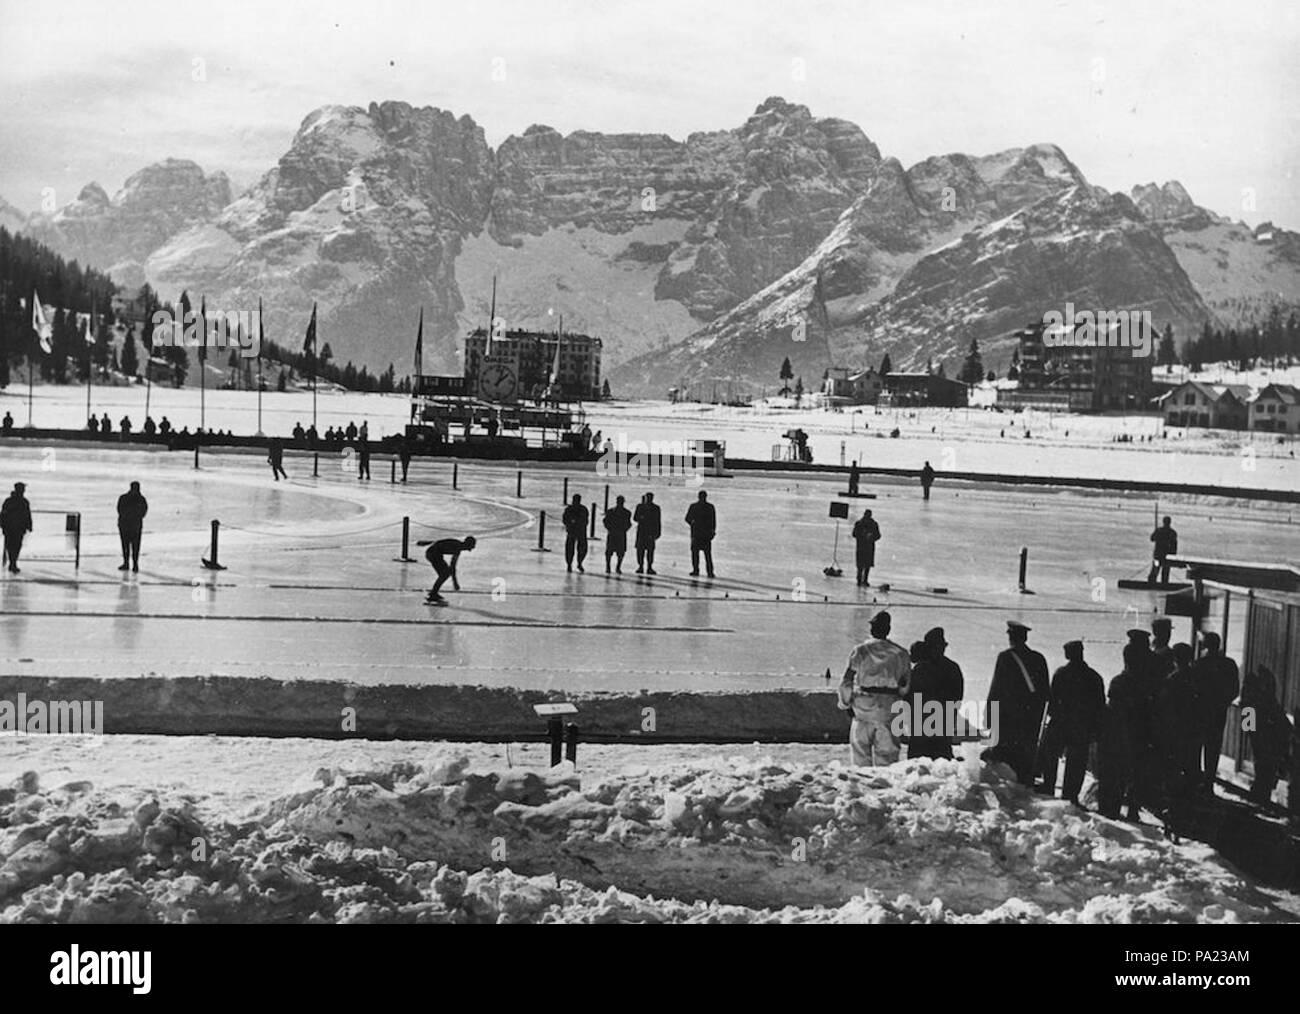 56 Cortina 1956 Winter Olympics - Soviet Russia's Boris Shilkov on the Olympic skating rink - Stock Image